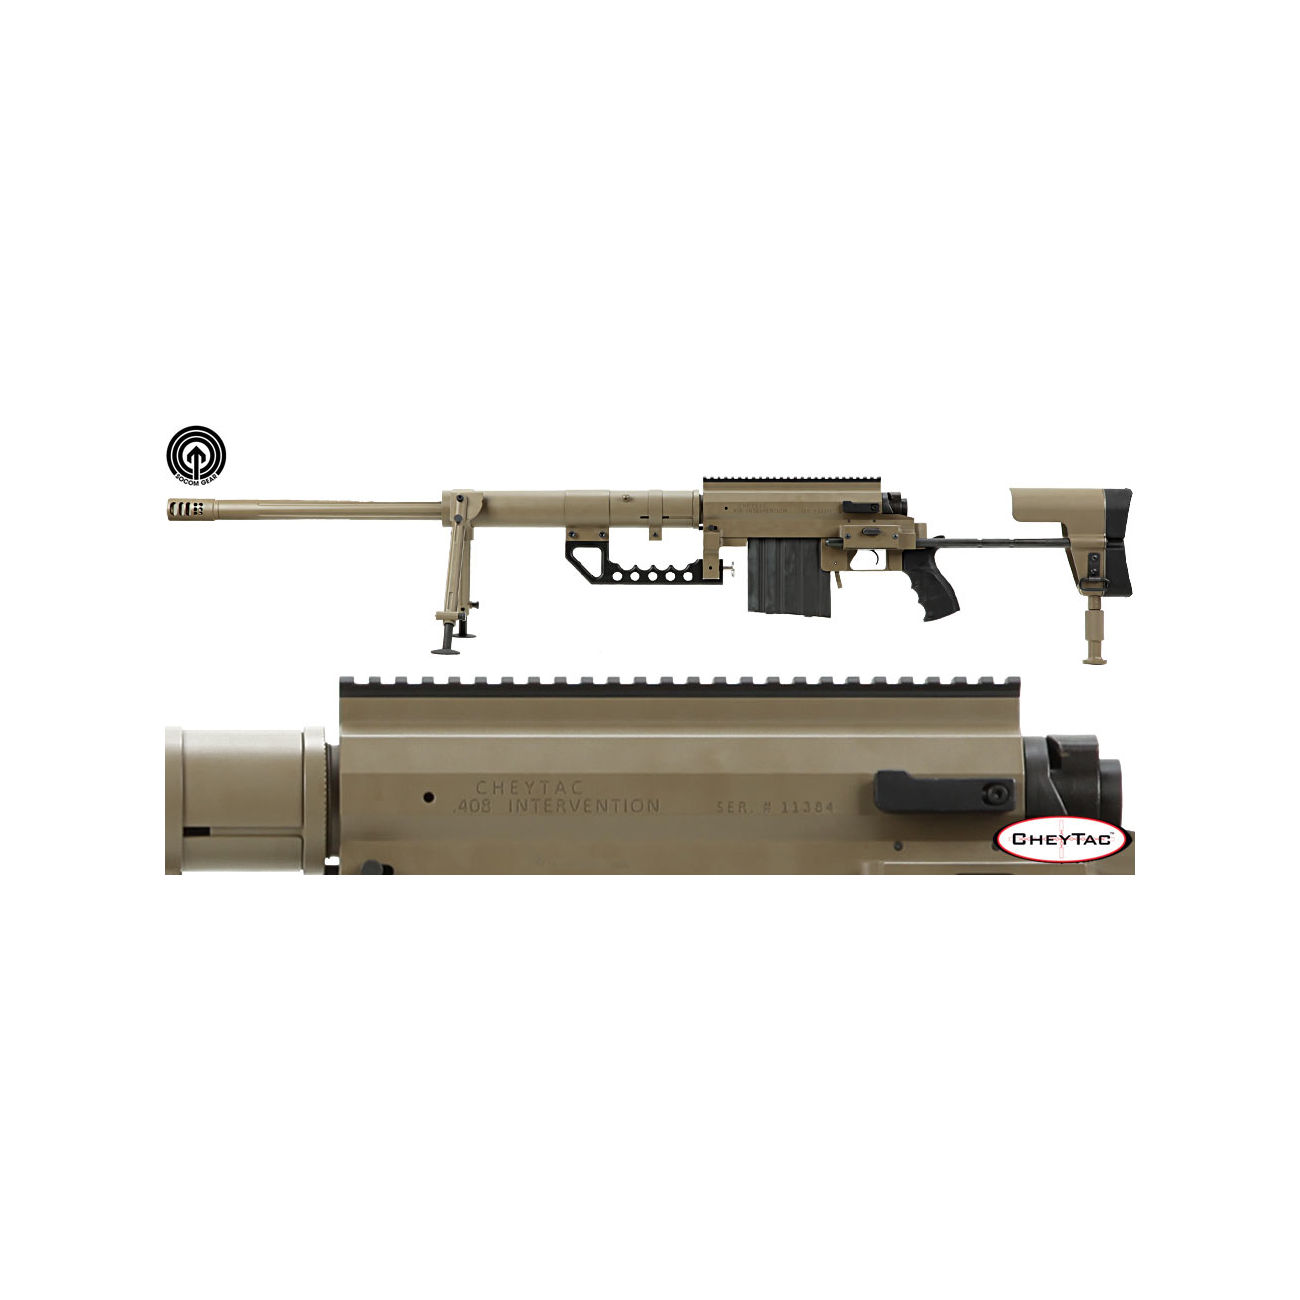 Socom Gear CheyTac M200 Intervention 8mm  Scritte e Loghi